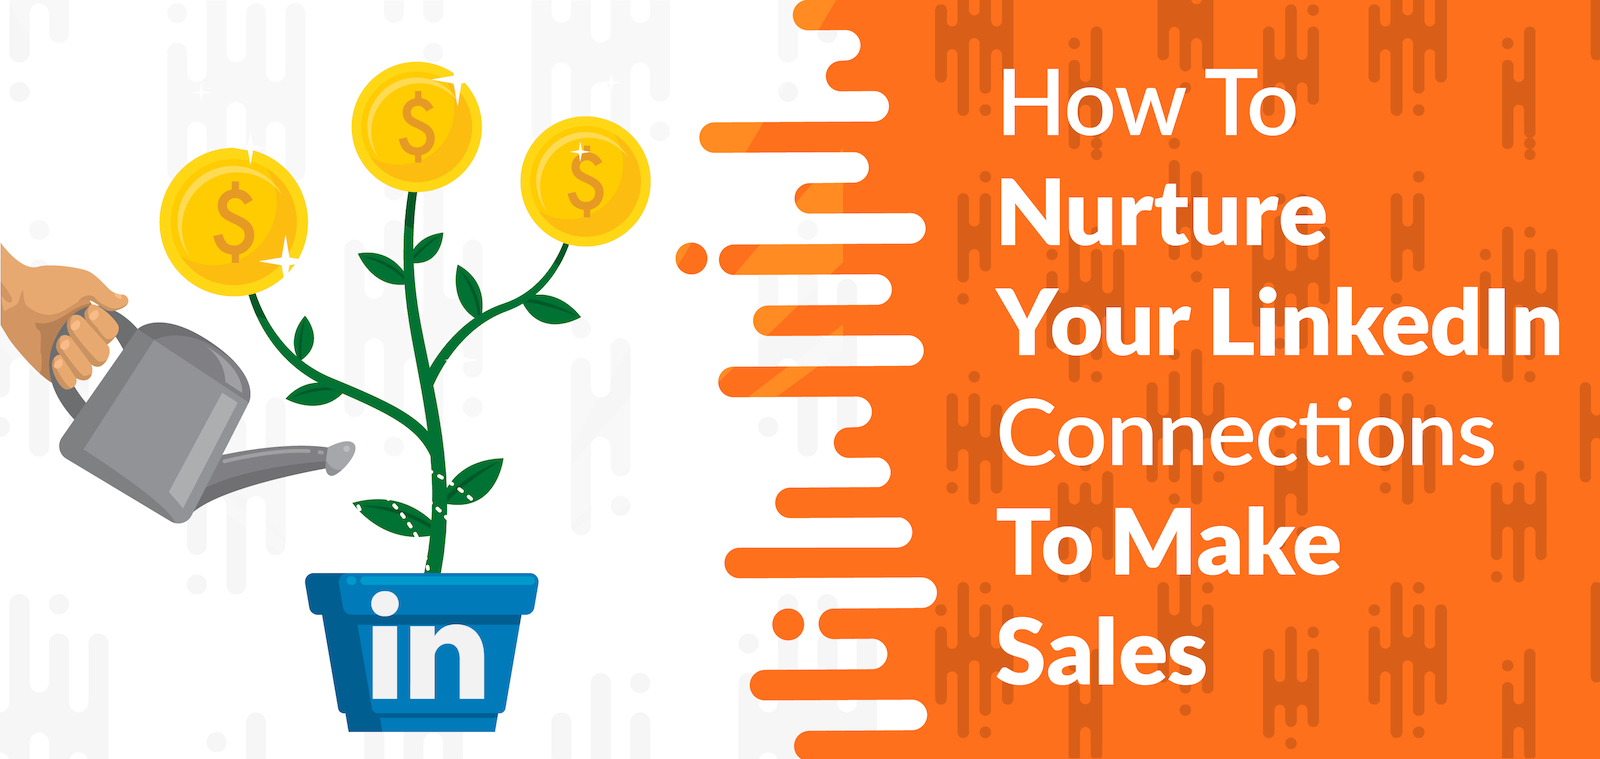 How To Nurture Your LinkedIn Connections To Make Sales